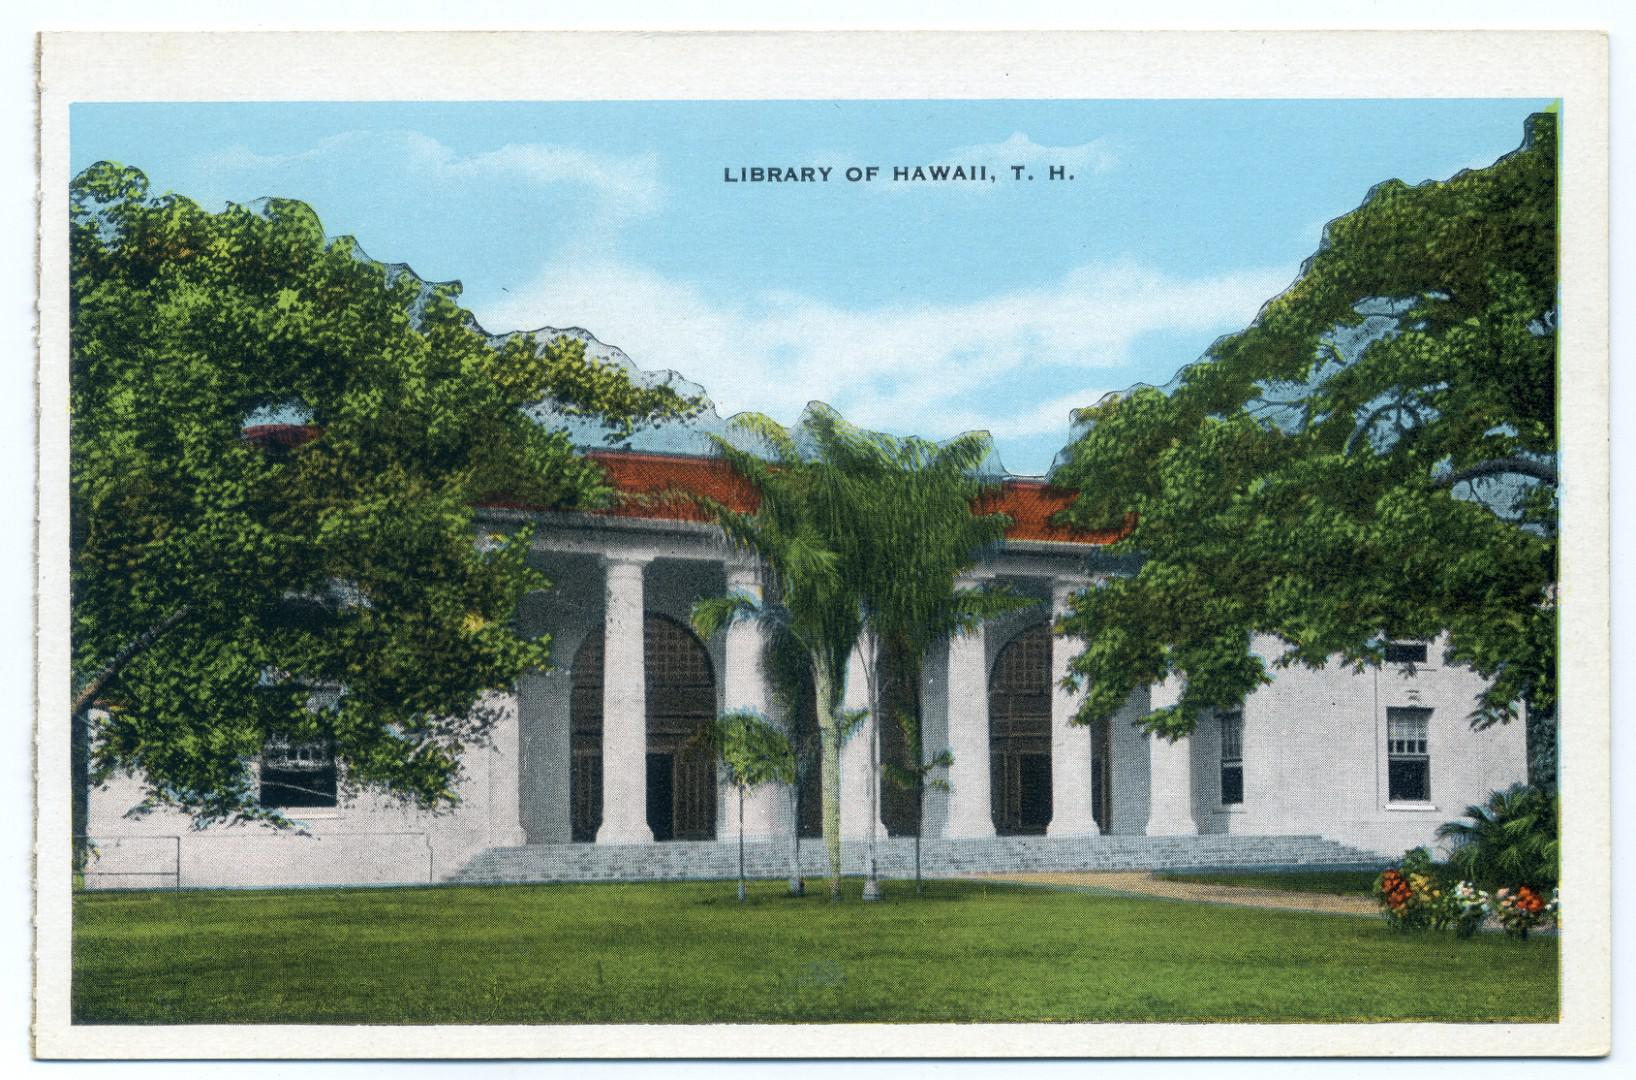 Honolulu: Hawaii State Library